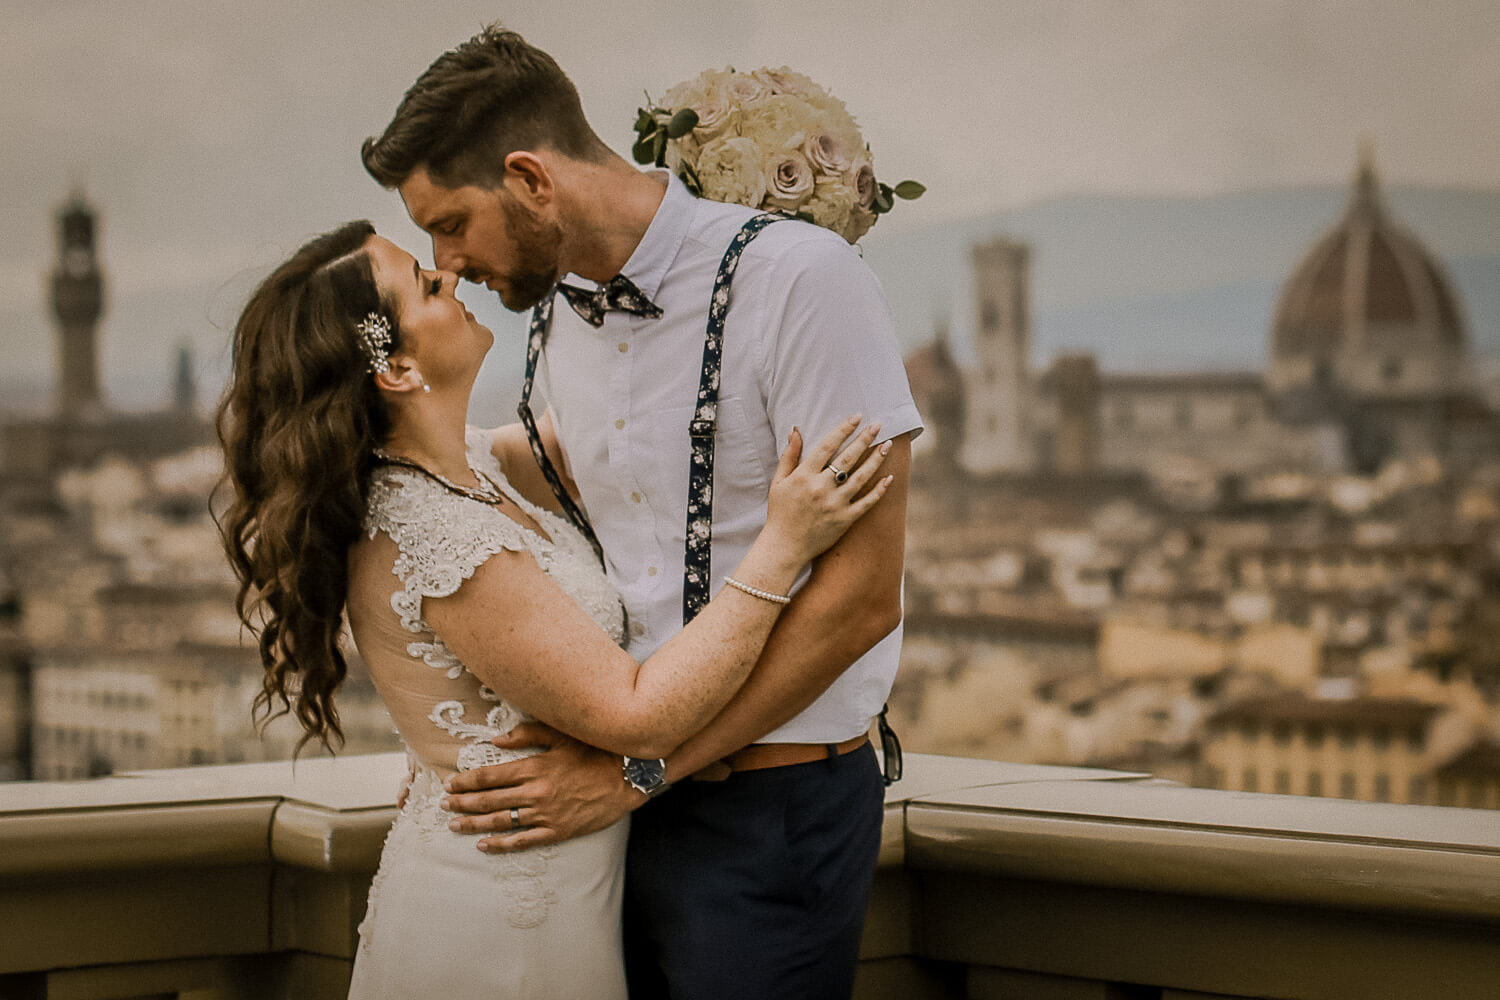 Romantic photo of couple of wedding day with view of Florence. Best wedding destination in Europe